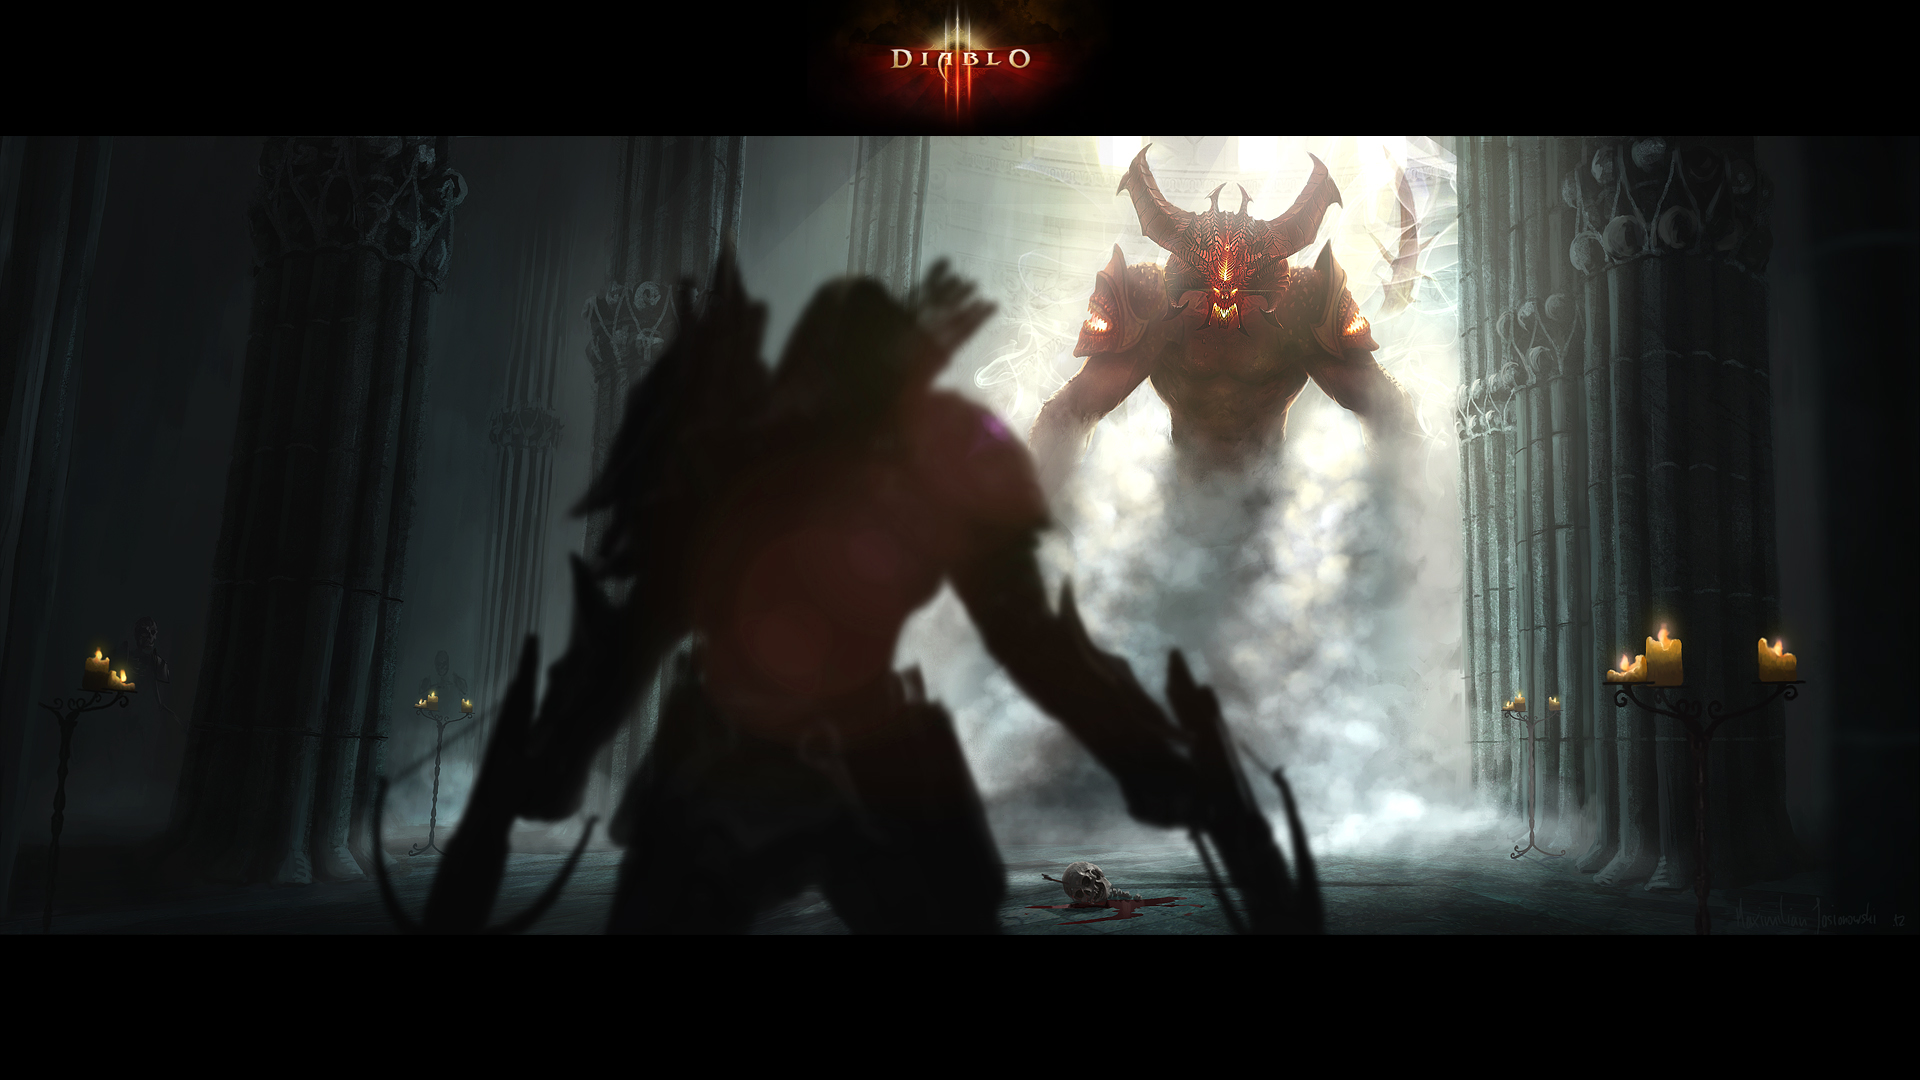 Diablo III Full HD Wallpaper And Background Image